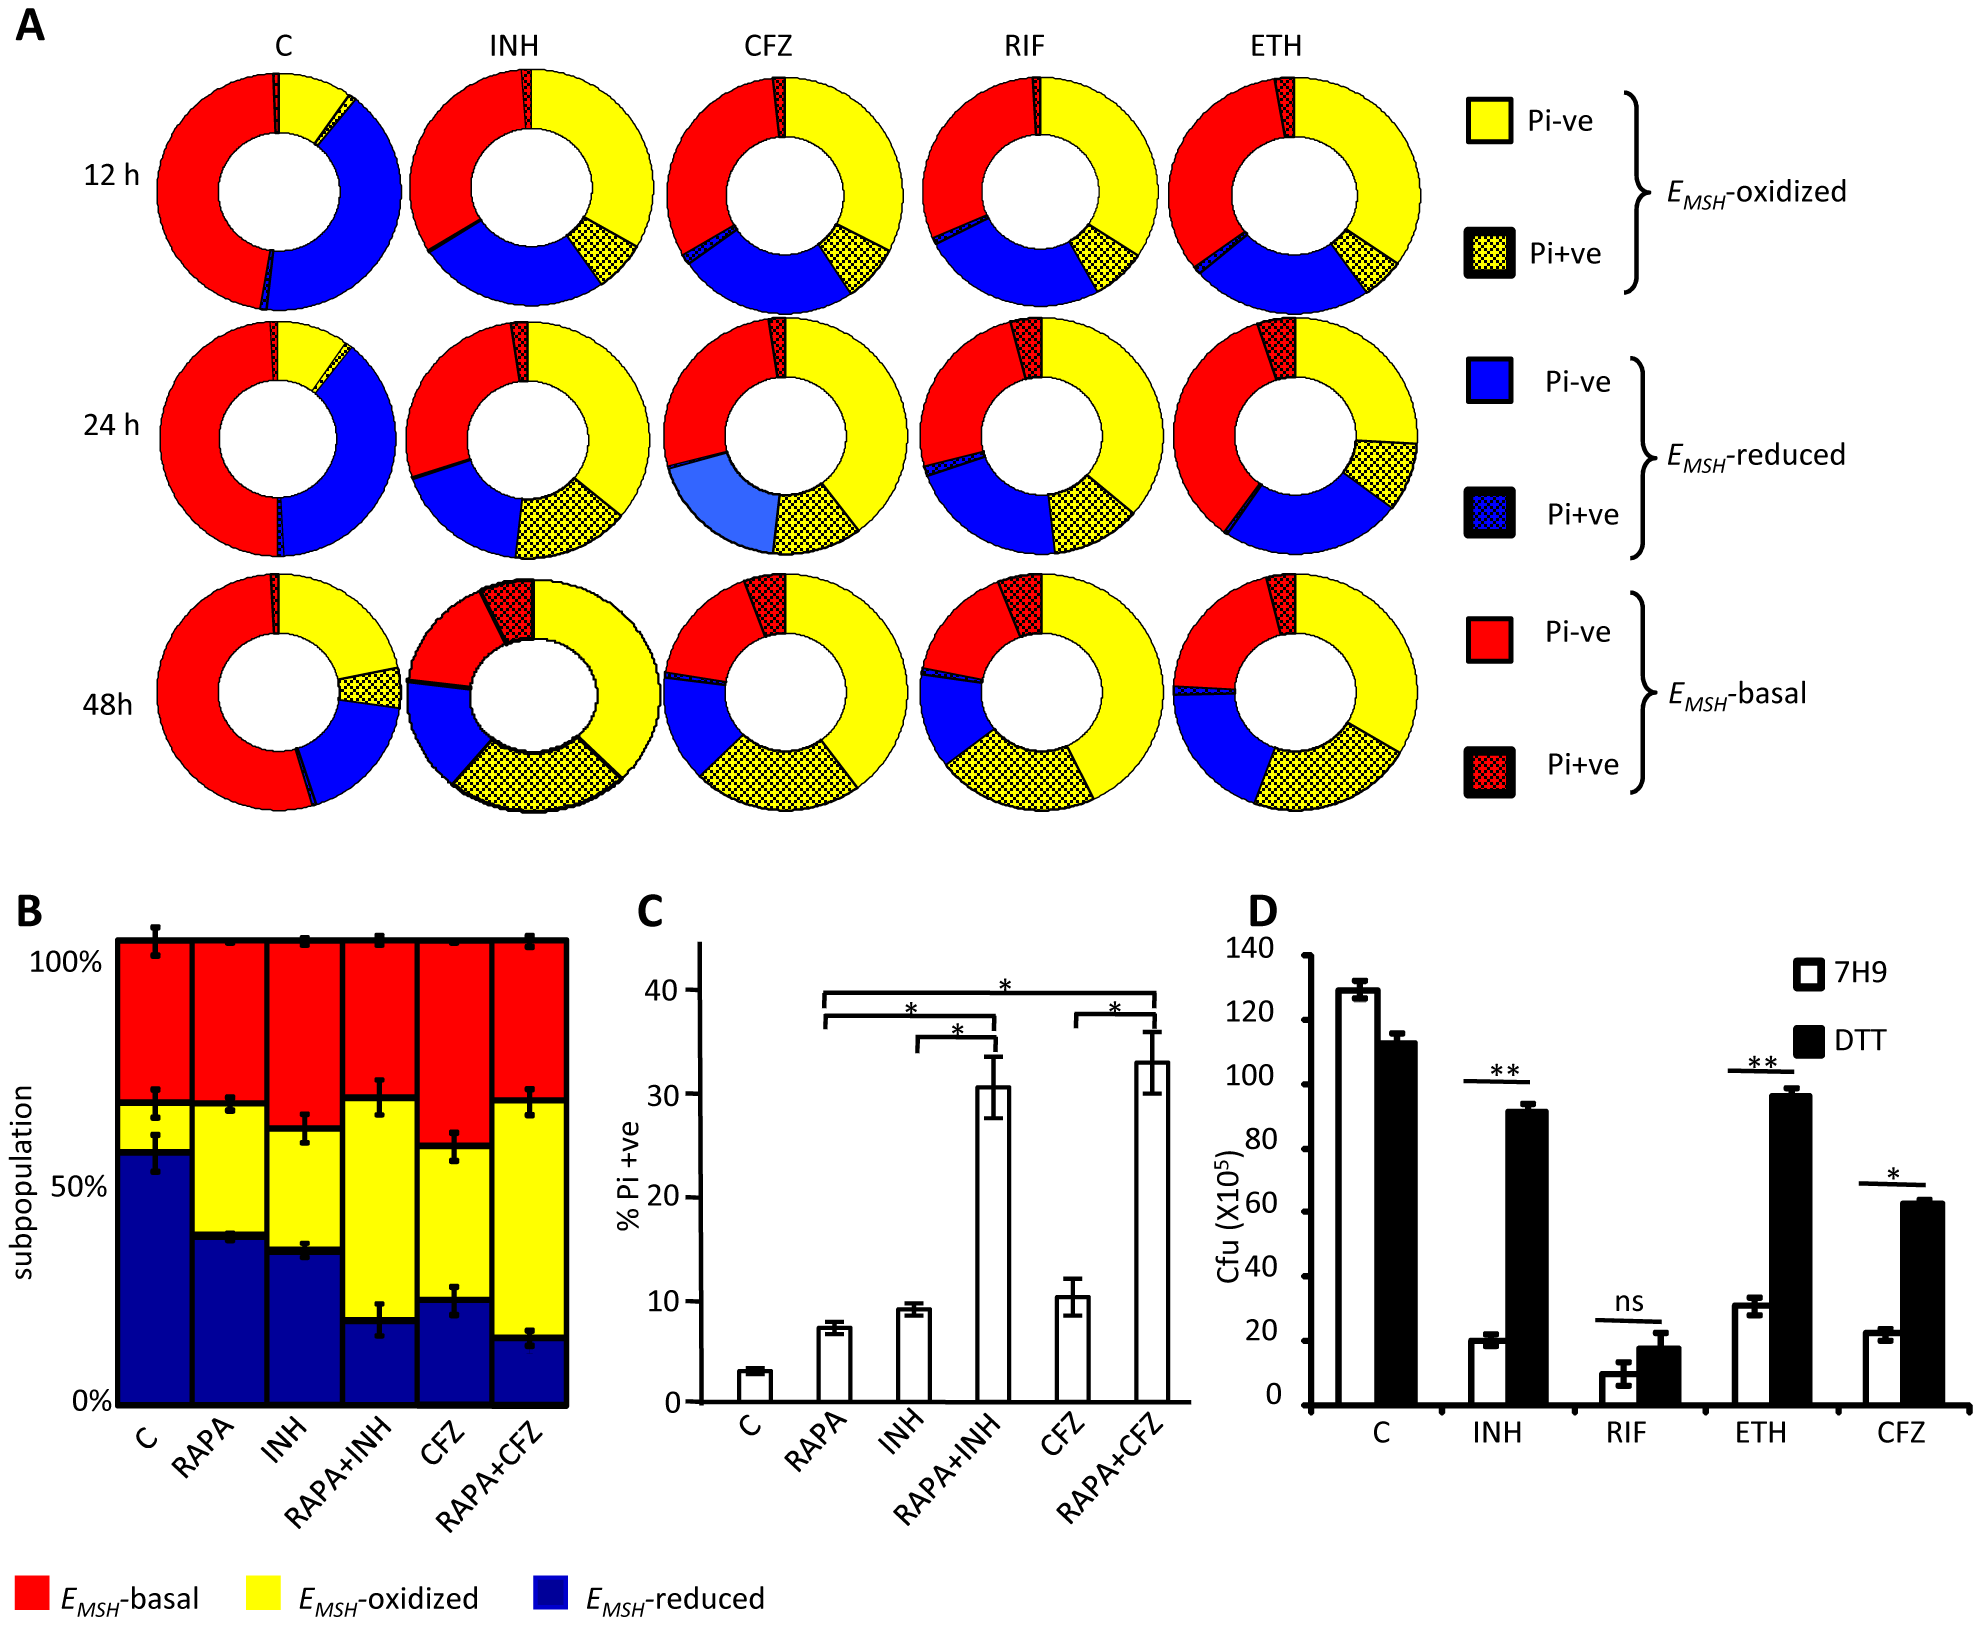 Heterogeneity in intrabacterial <i>E<sub>MSH</sub></i> modulates drug tolerance.